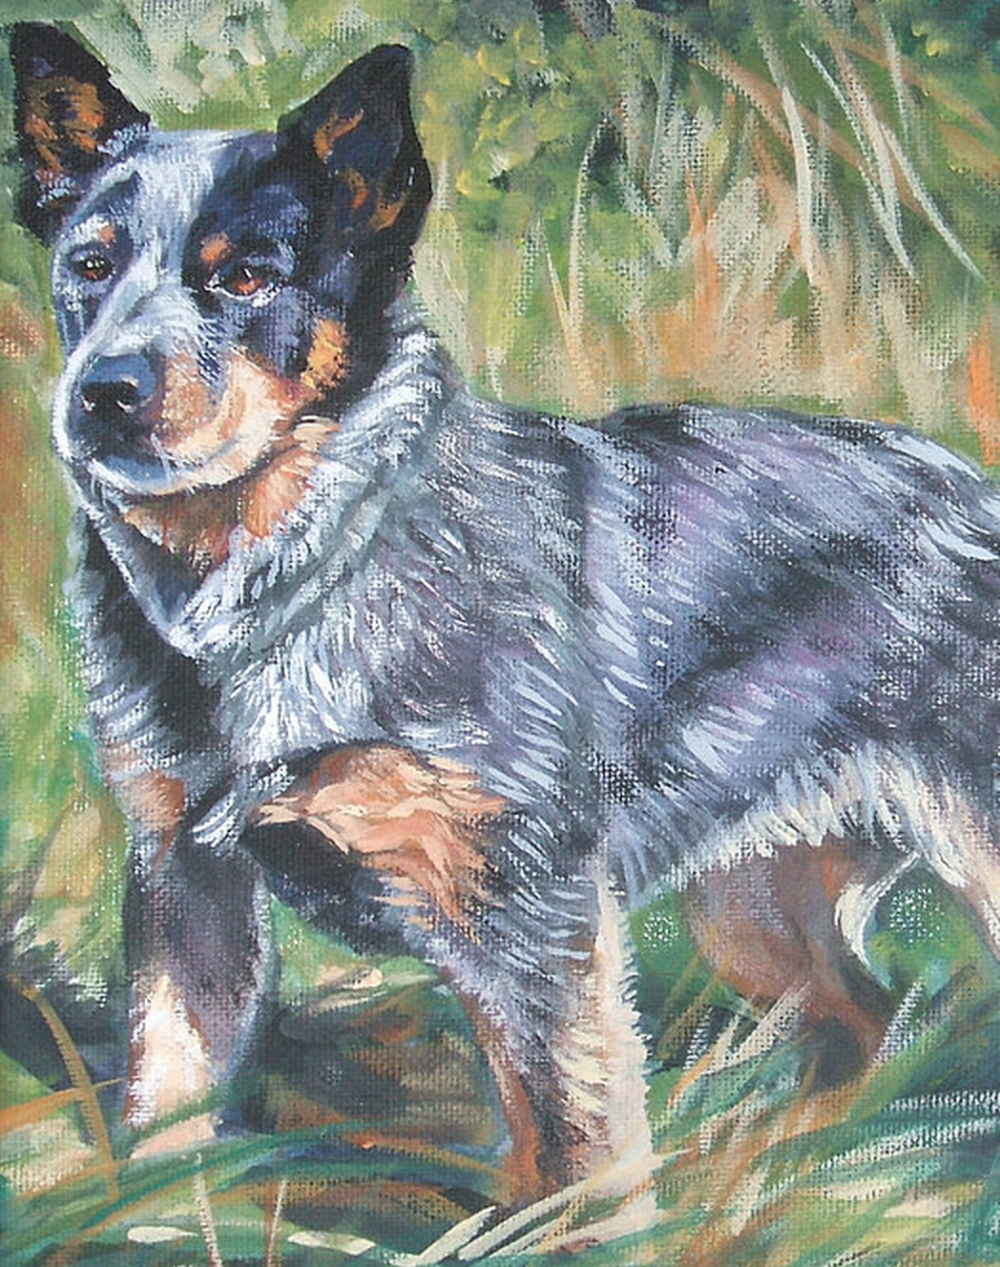 Australian Cattle Dog, heeler, history, dogs, purebred dogs